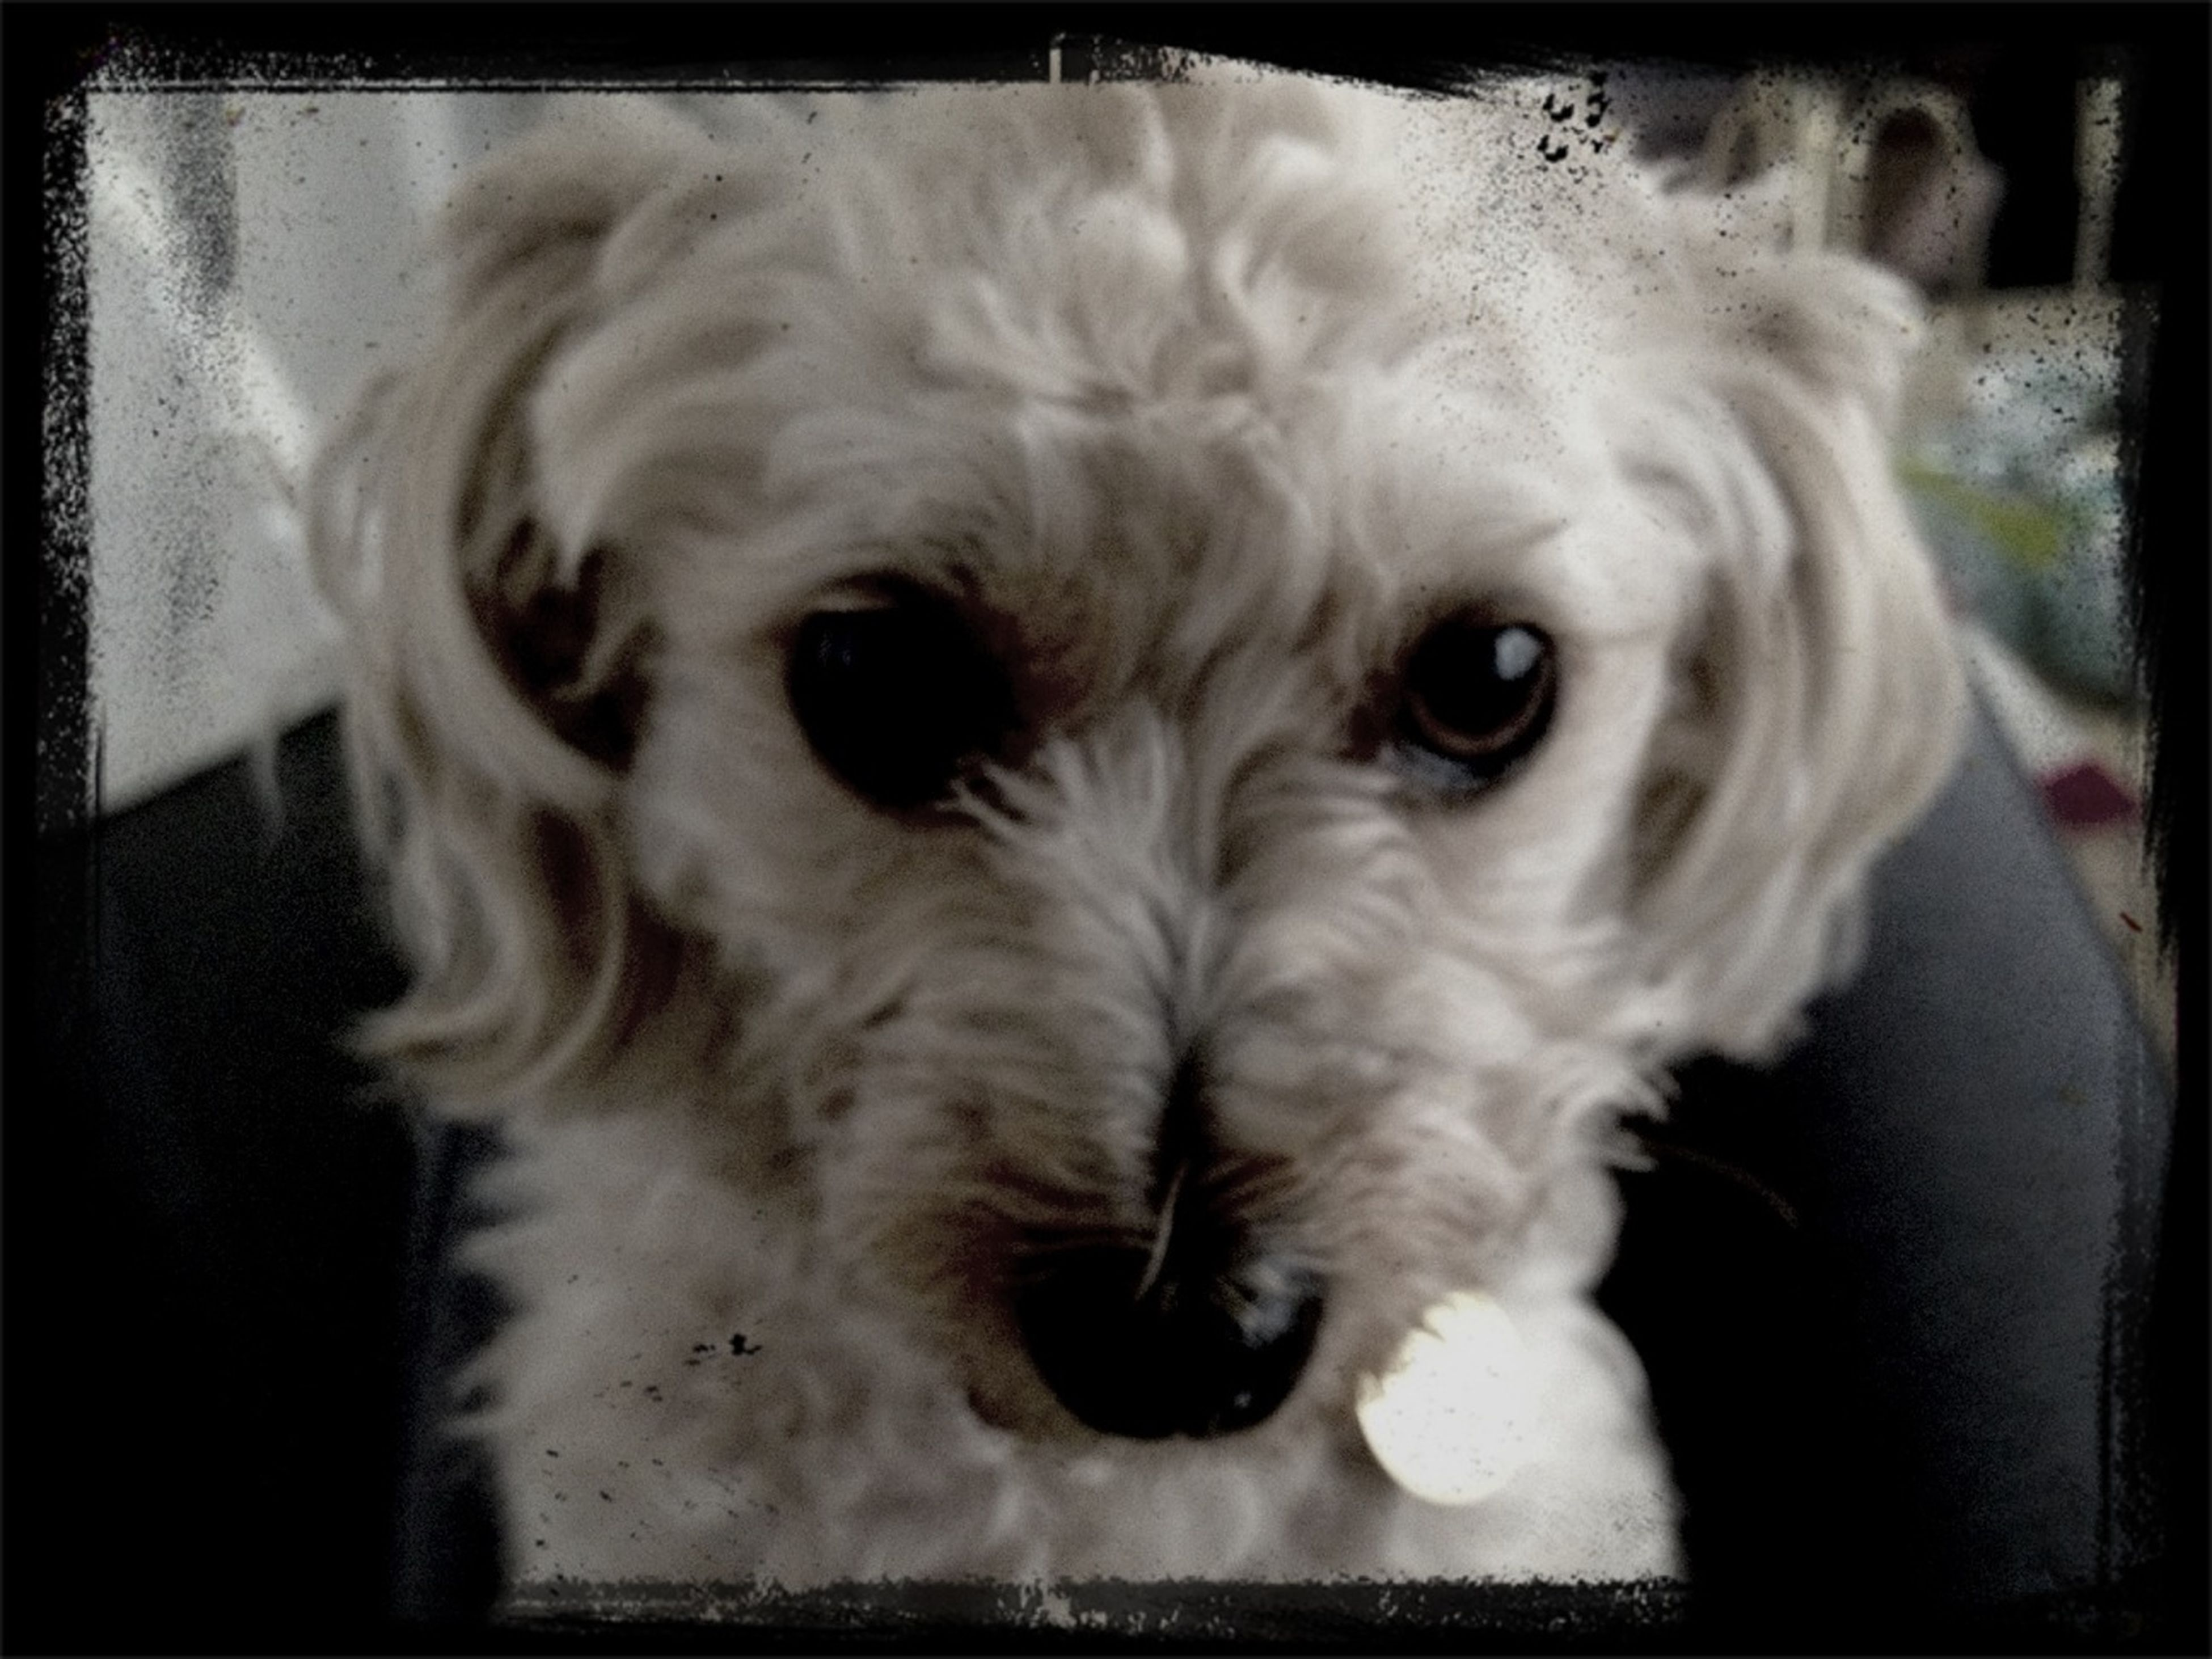 dog, transfer print, pets, domestic animals, animal themes, one animal, auto post production filter, mammal, indoors, looking at camera, portrait, close-up, animal head, vignette, high angle view, no people, front view, young animal, home interior, animal body part